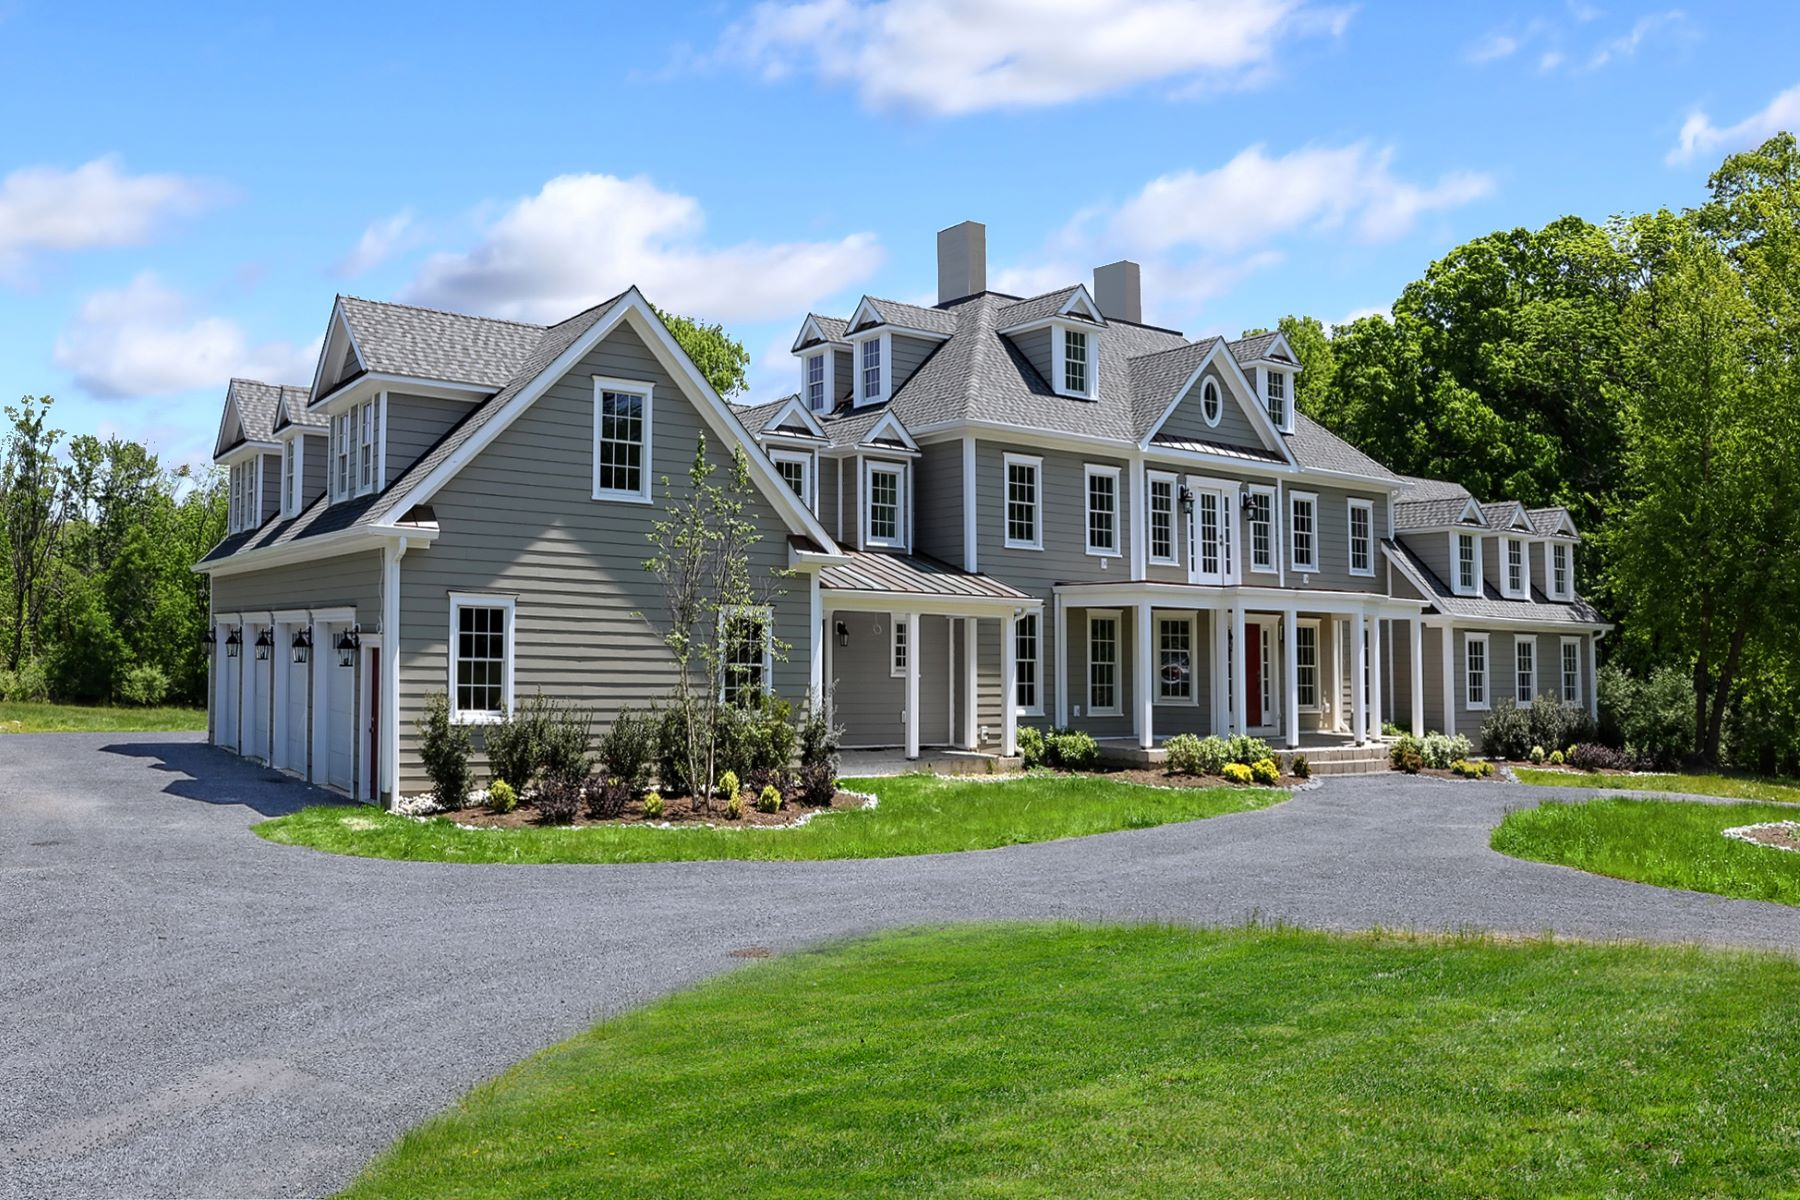 Single Family Homes for Sale at Every Amenity in this Spectacular Estate-Style Home 114 Federal Twist Road Stockton, New Jersey 08559 United States